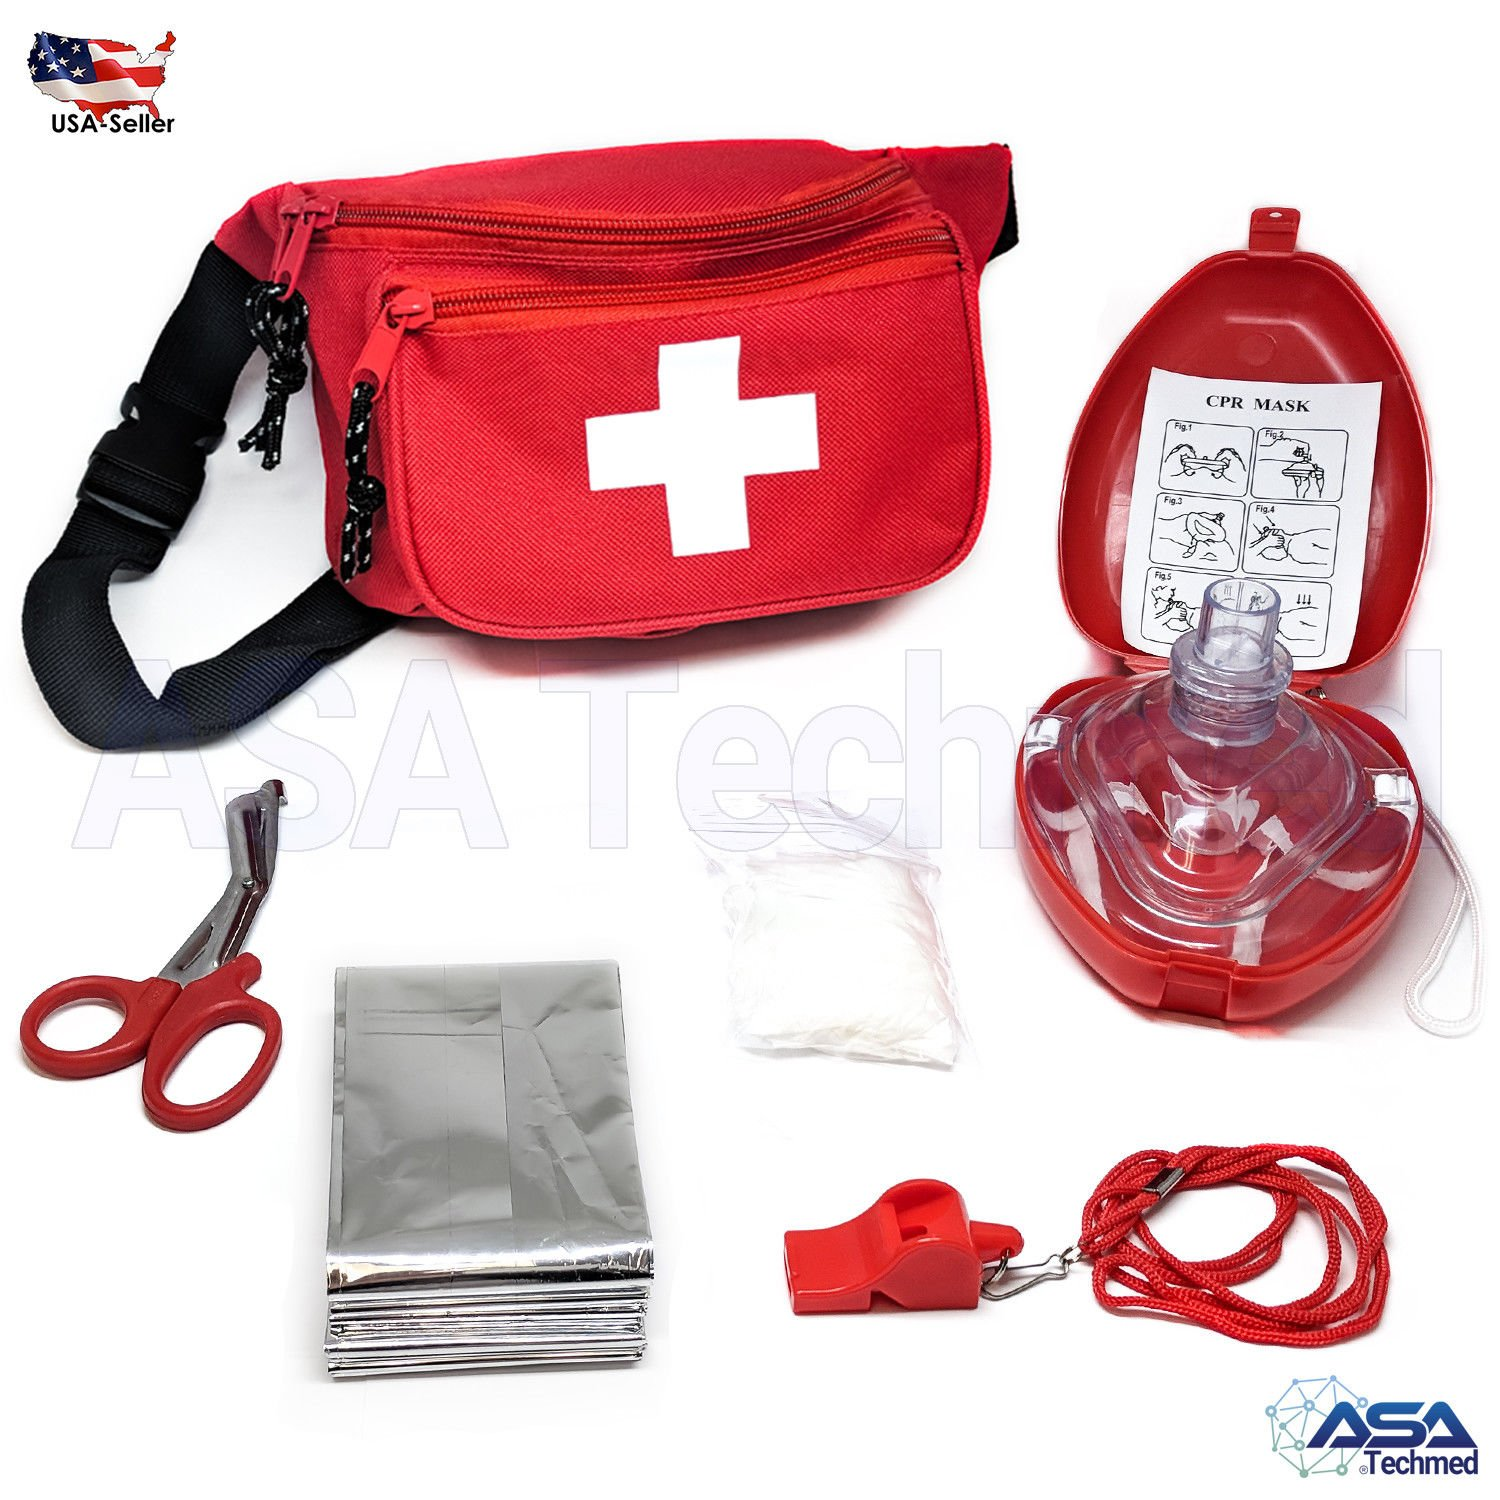 ASATechmed Lifeguard Bae Watch Style Kit (6 Piece) Compact for Emergency at Home, Outdoors, Car, Camping, Workplace, Hiking & Survival.